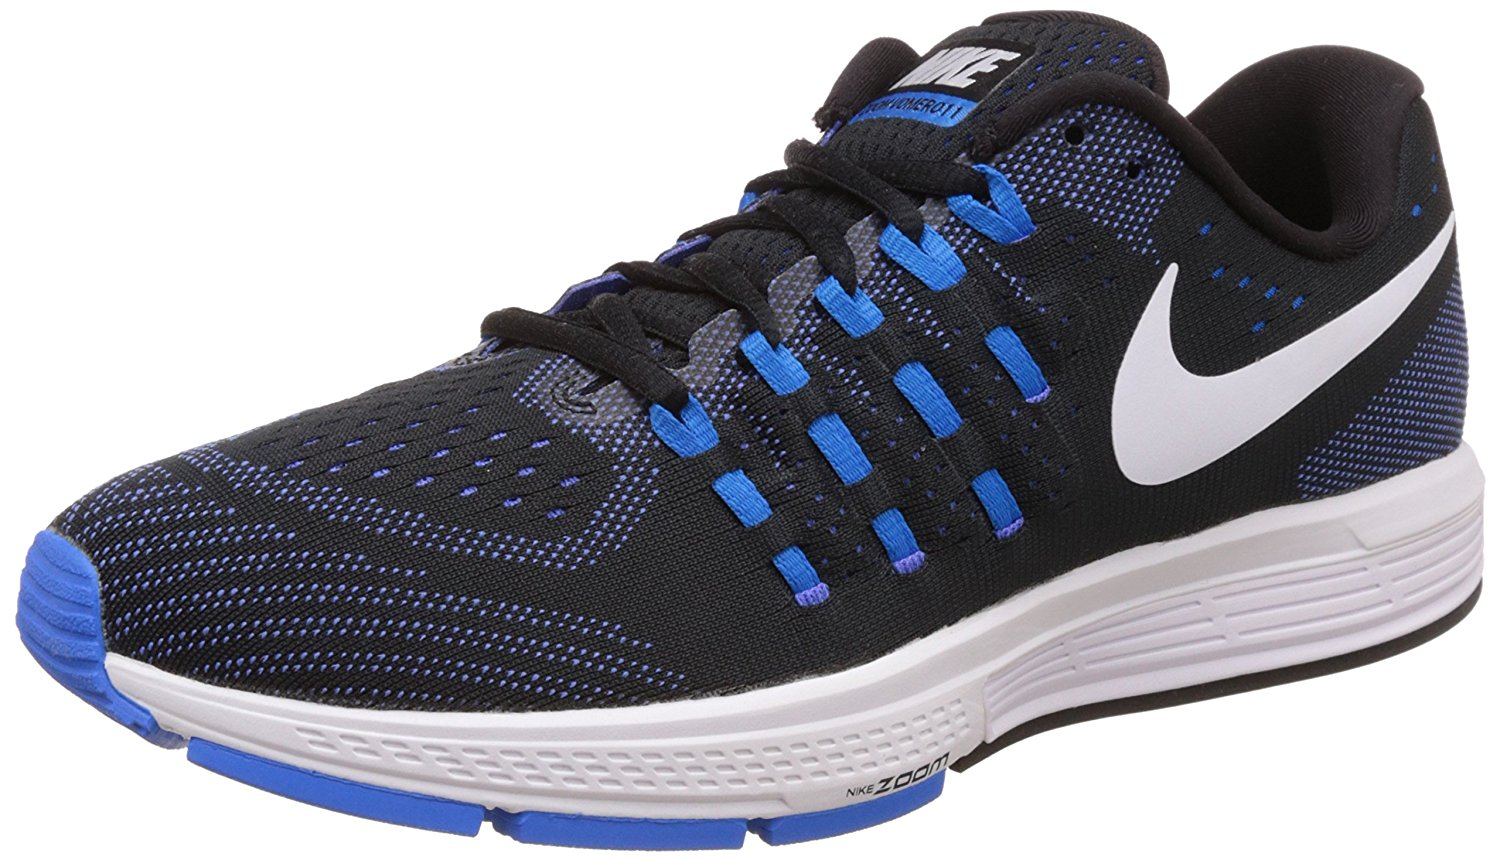 bf4be07dff6 Nike Air Zoom Vomero 11 Running Men s Shoes